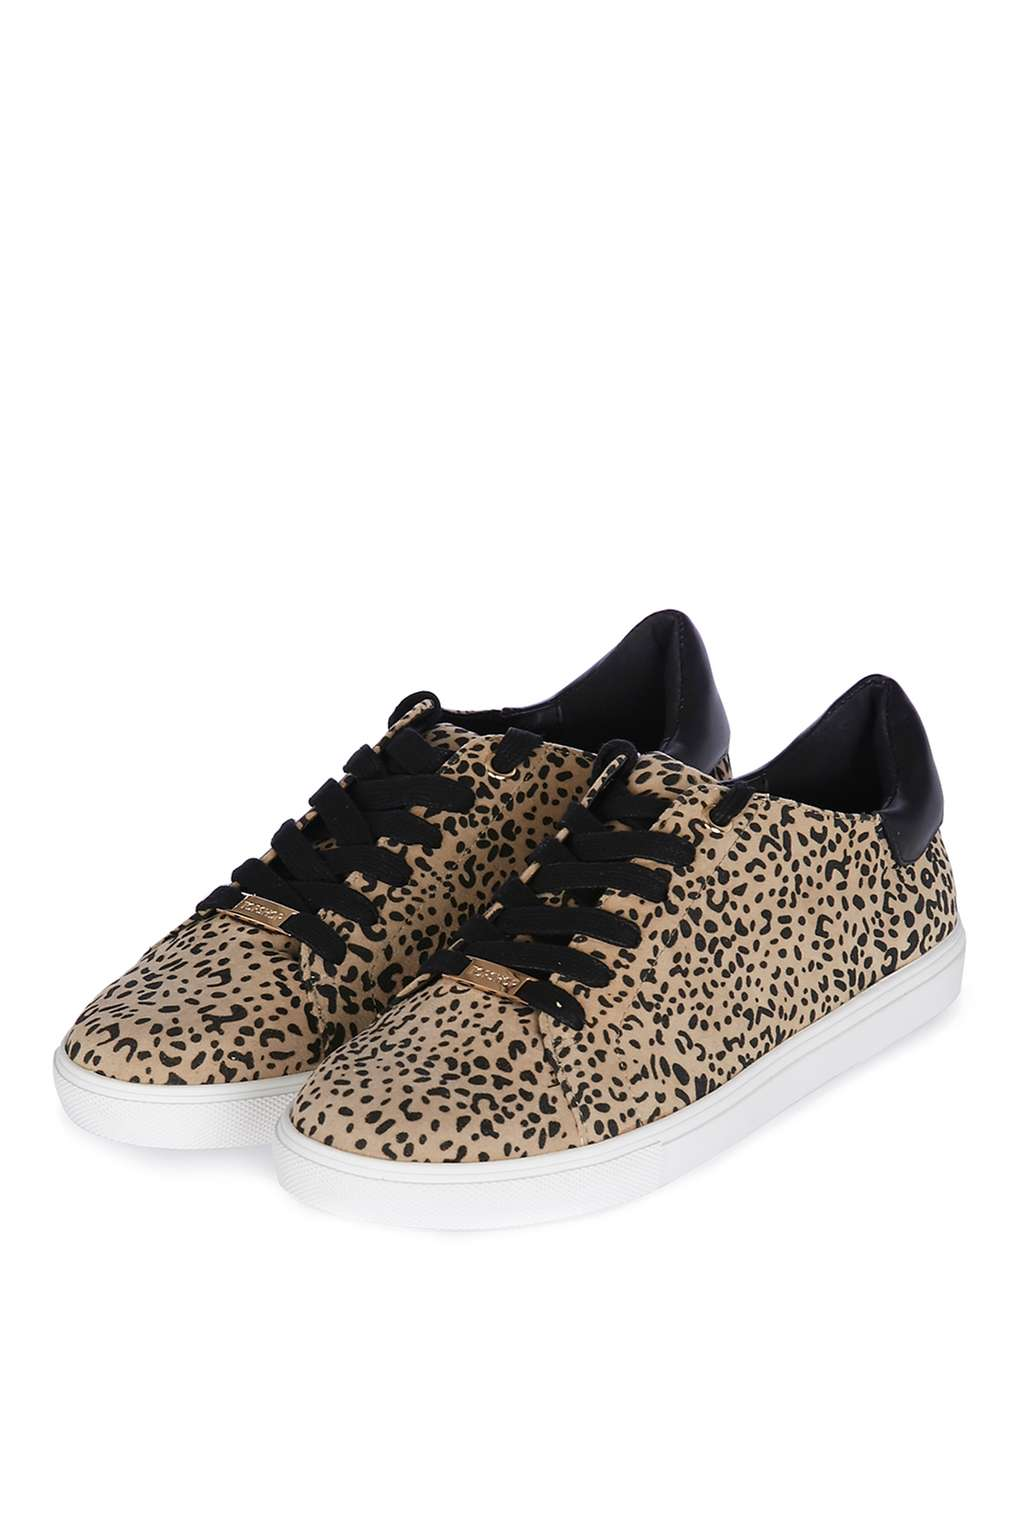 CATSEYE Lace Up Trainers - ShopperBoard